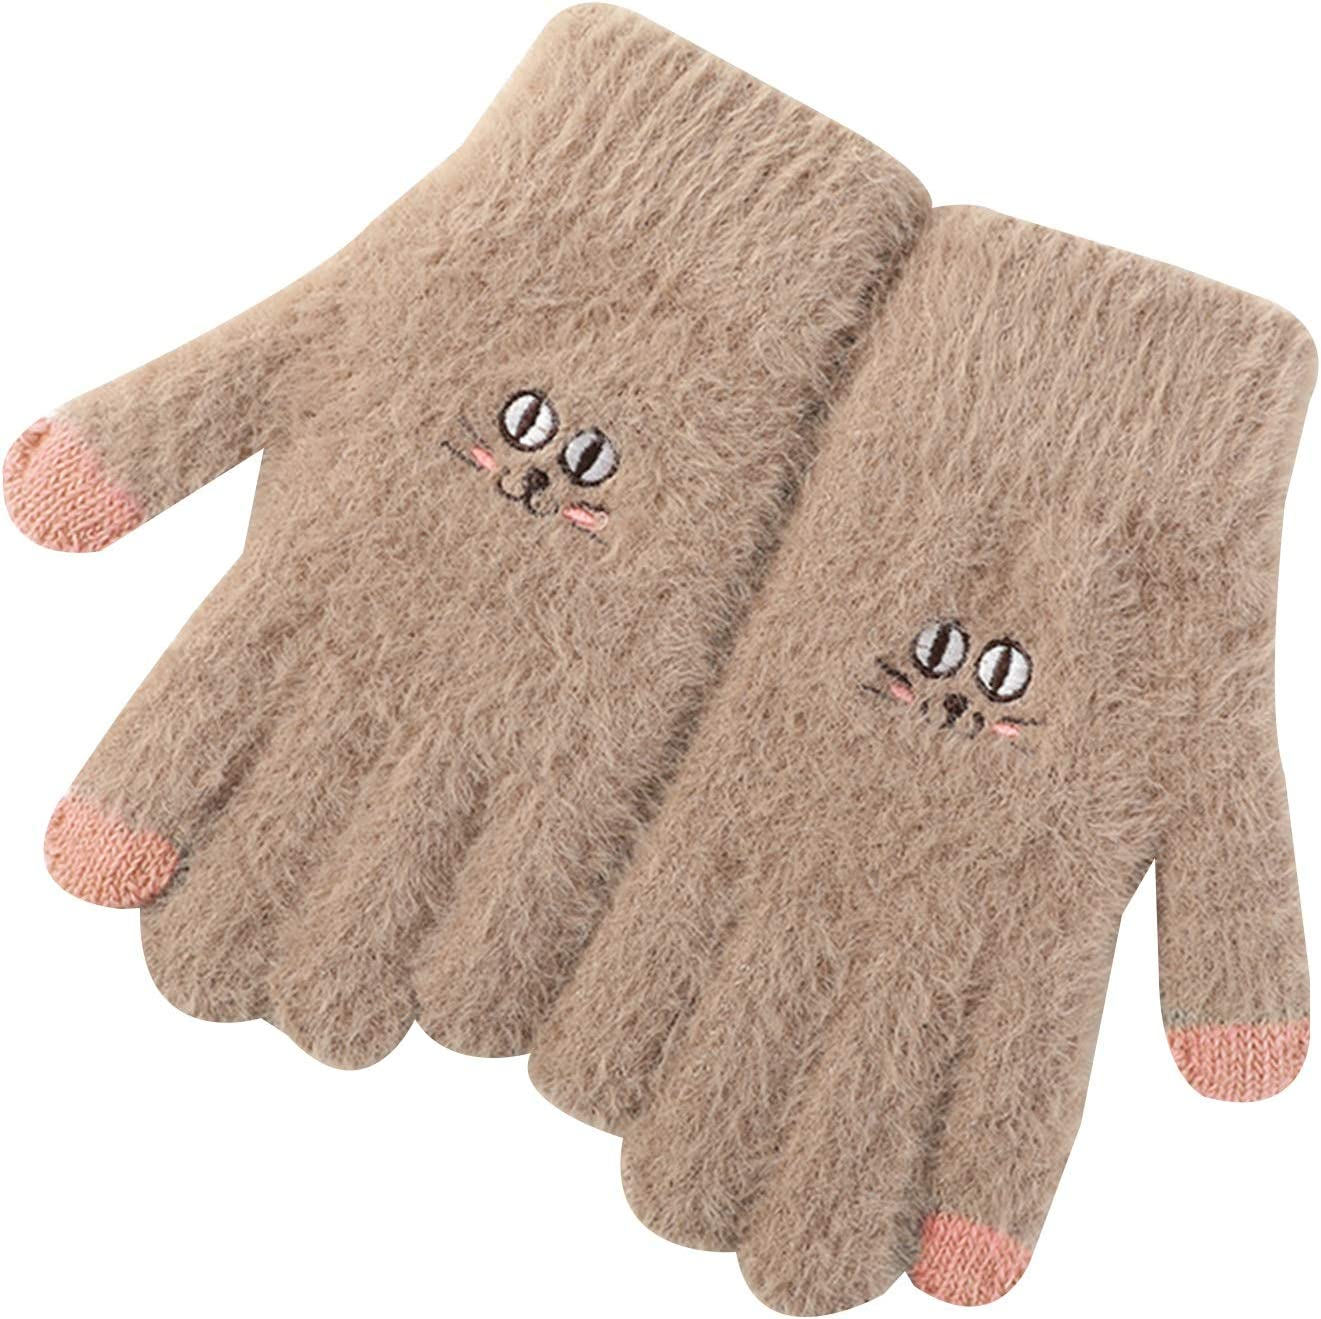 Gloves Touch Screen Gloves for Ladies, Cartoon Embroidered Plush Knitted Gloves for Cycling in Autumn and Winter (Color : Brown)